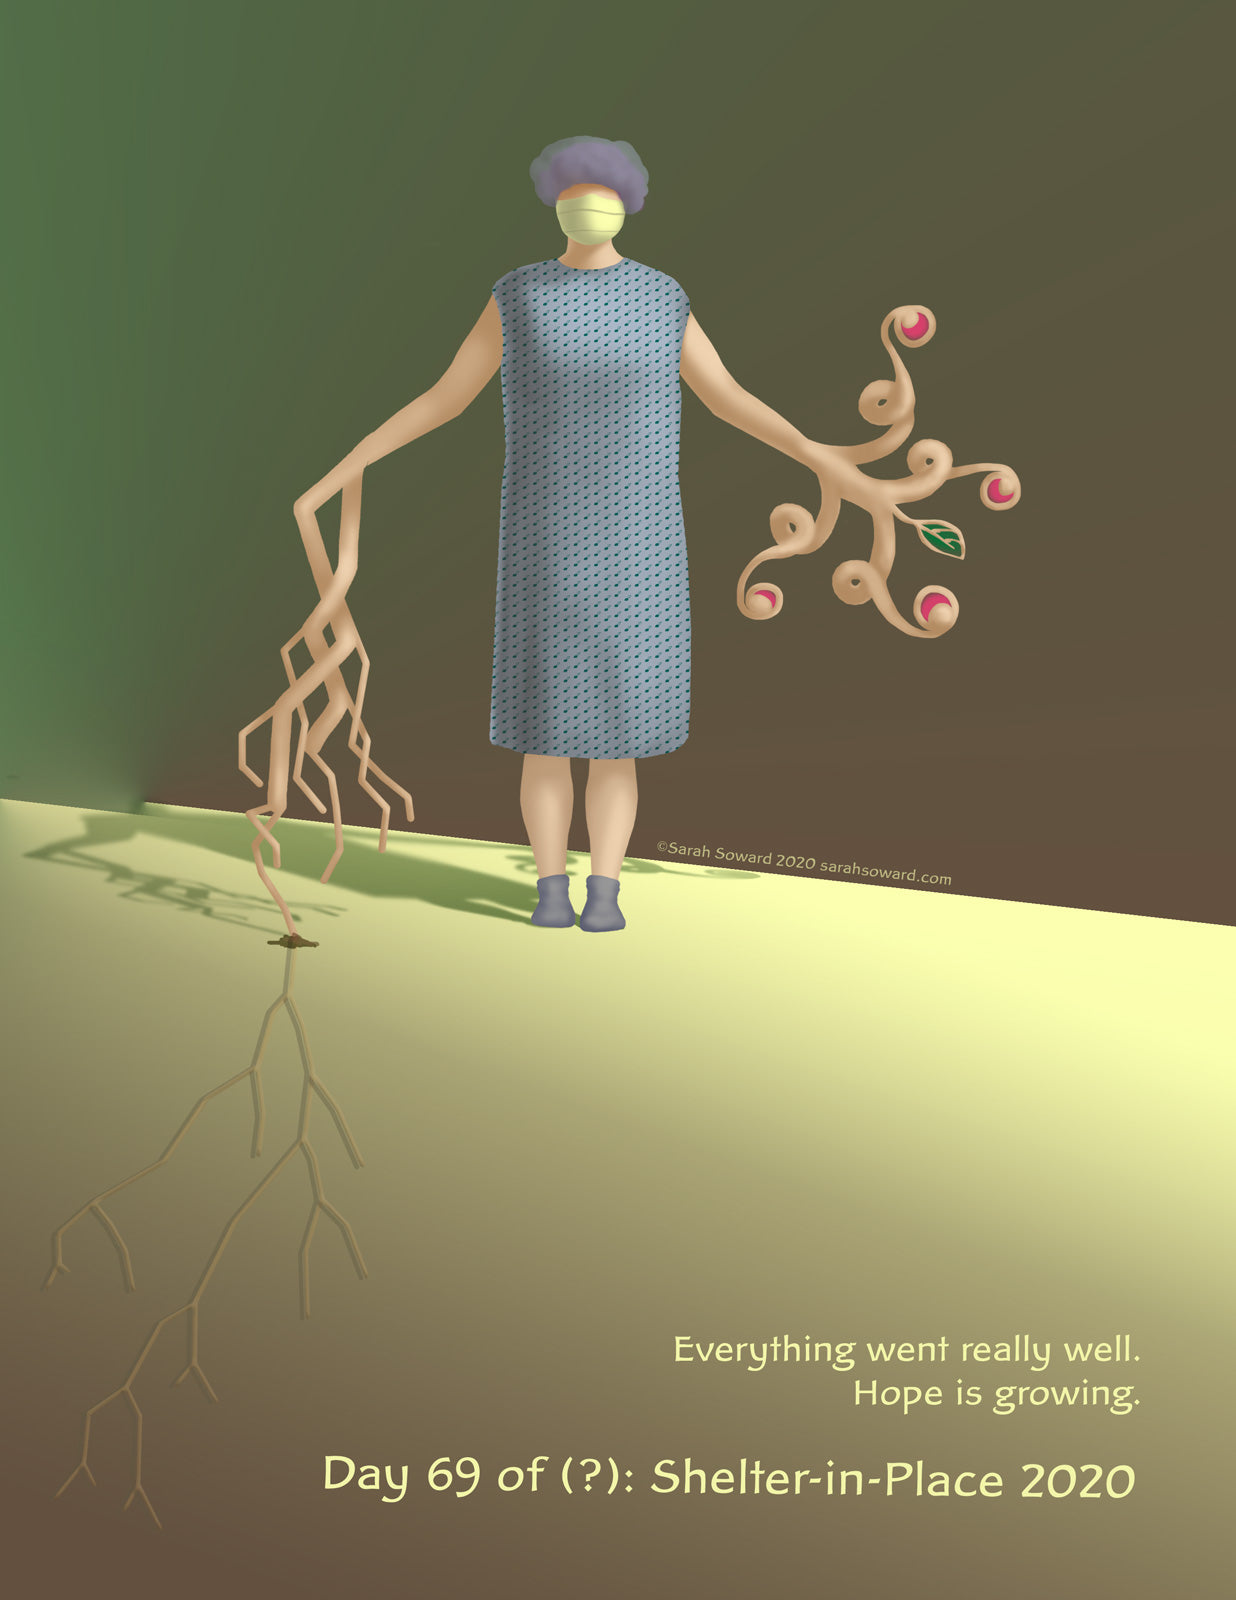 A woman stands in hospital patient garb. One art is turning into a flowering tree or plant. The other arm is turning into a root structure that is embedding itself into the ground. The text on the image reads  Everything went really well. Hope is growing.